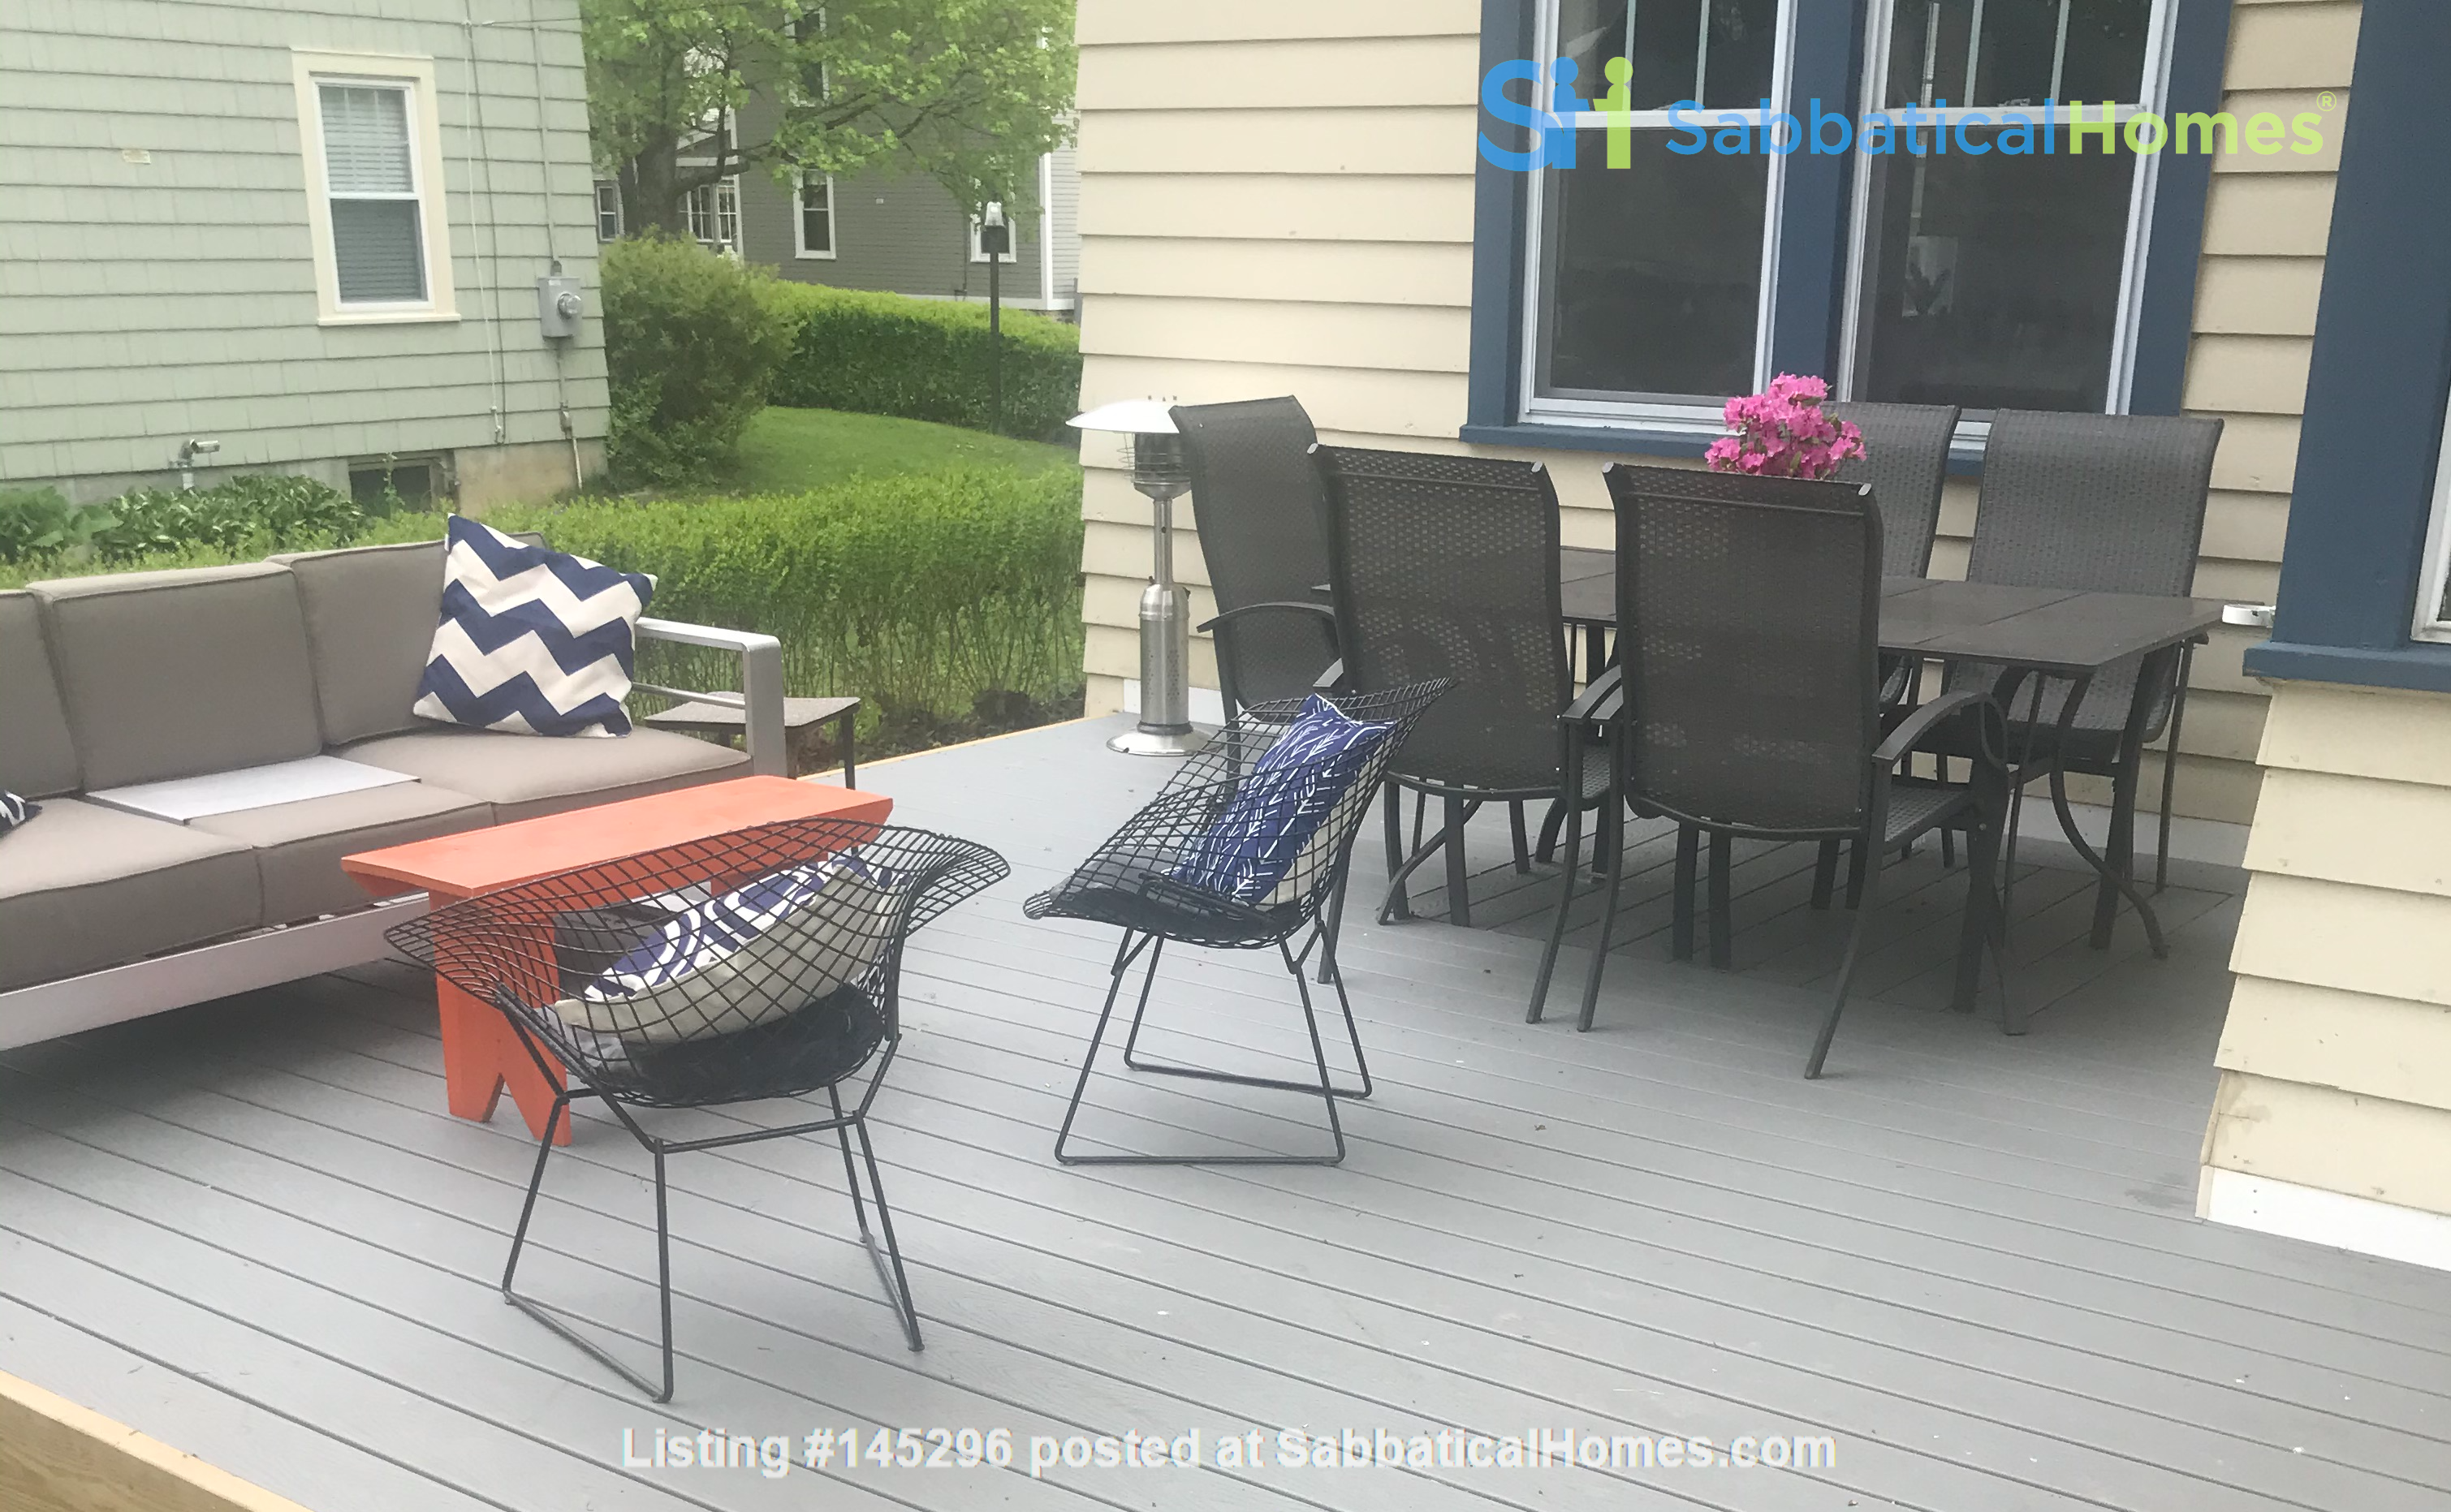 Charming 4 bedroom home in Williamstown - walk to campus and downtown Home Rental in Williamstown, Massachusetts, United States 0